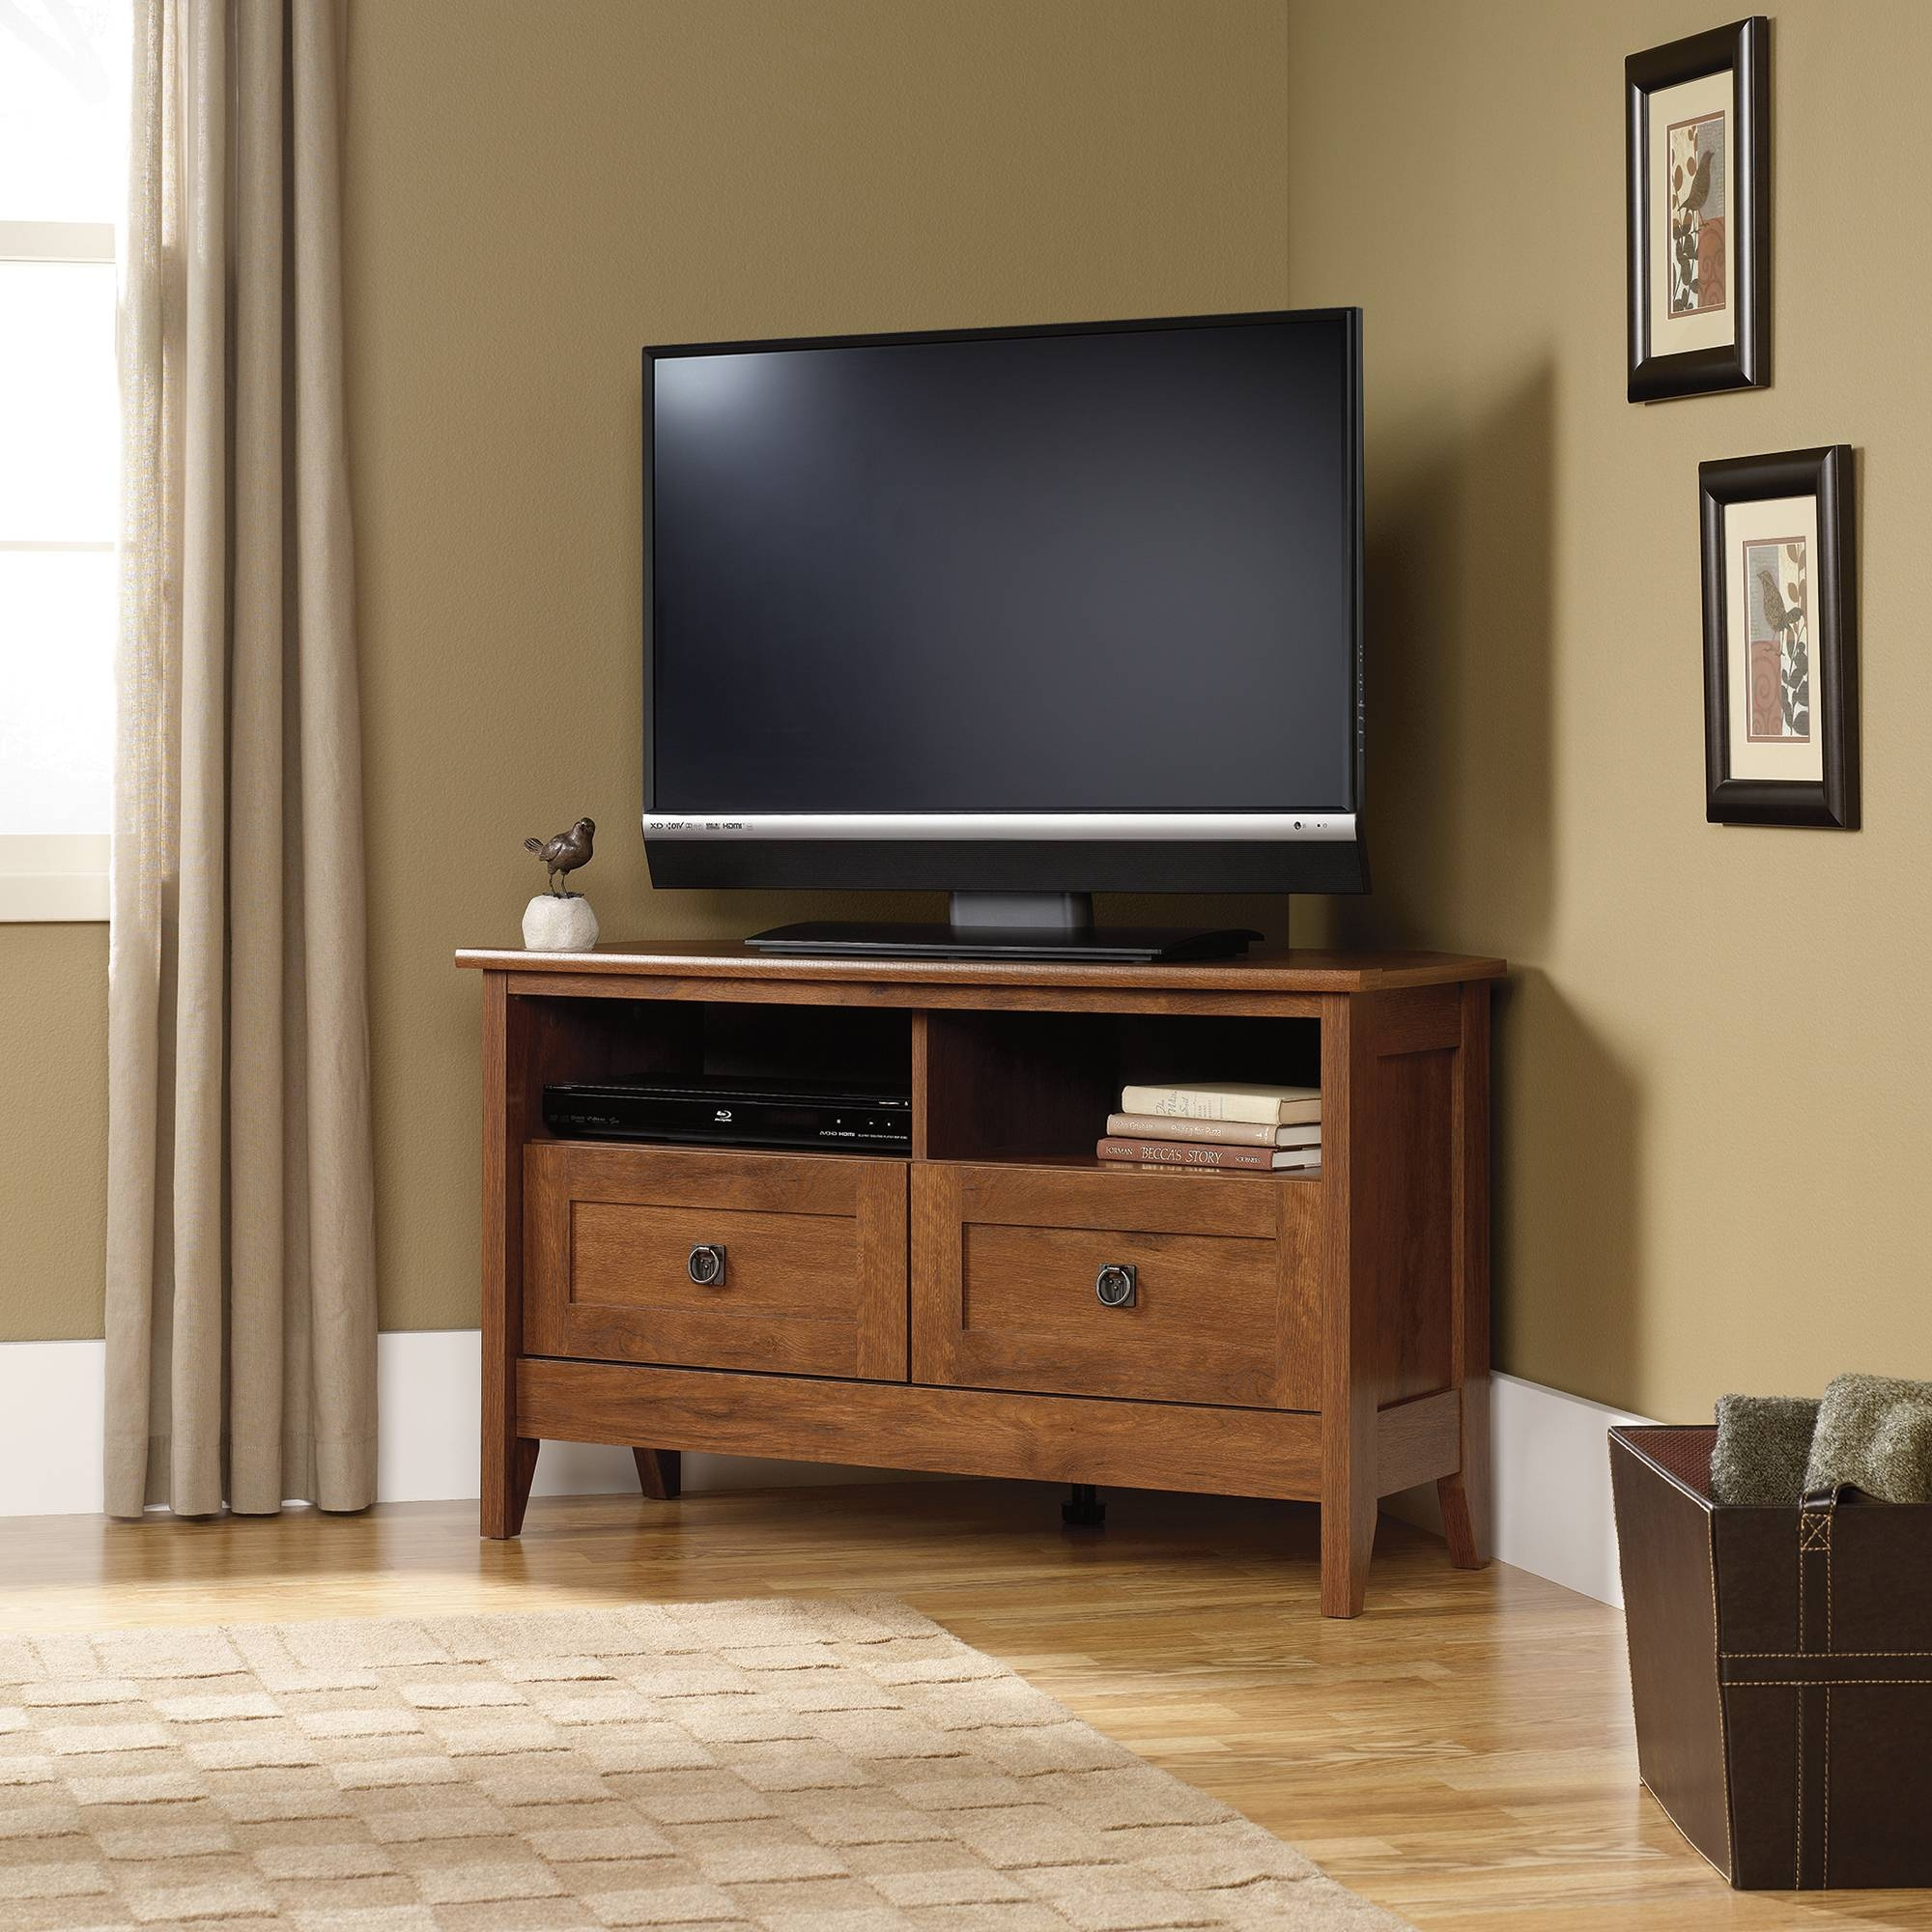 Sauder Select | Corner Tv Stand | 410627 | Sauder intended for Corner Tv Cabinets for Flat Screens With Doors (Image 11 of 15)